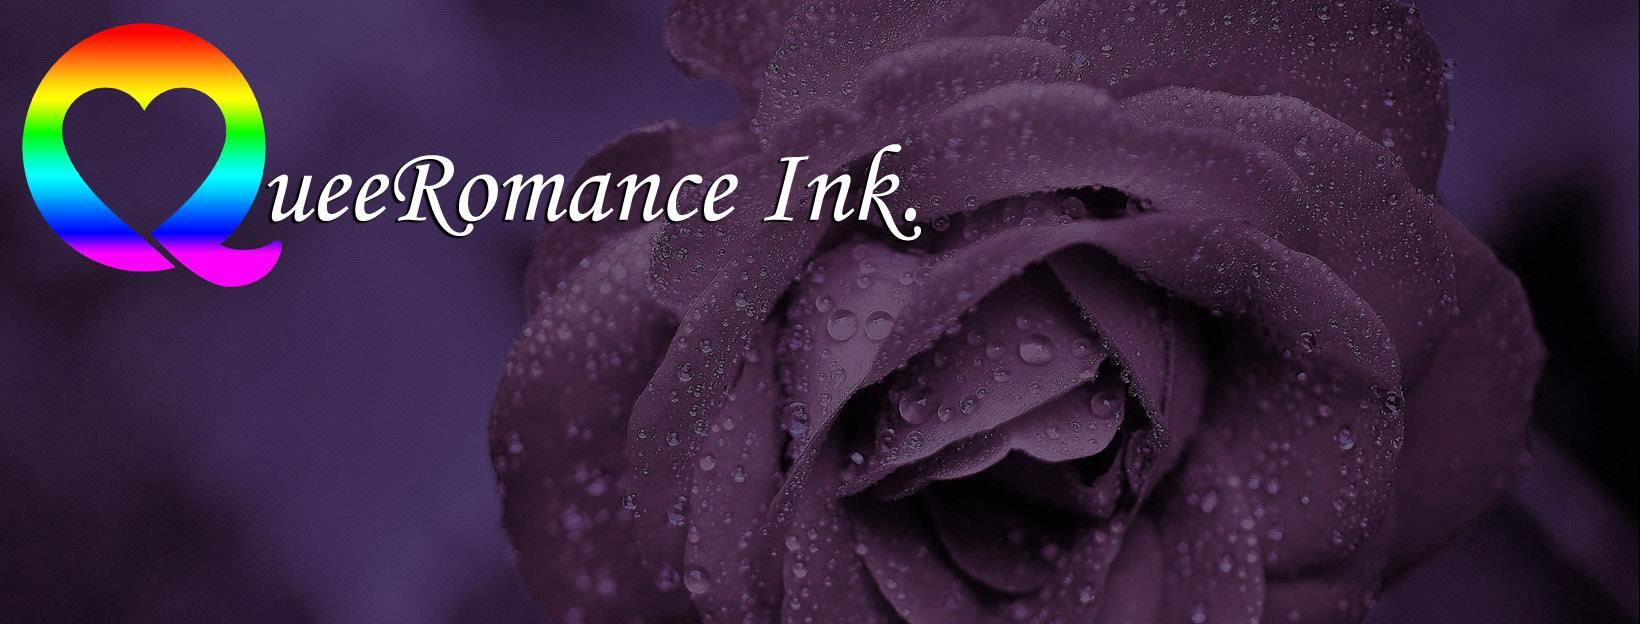 Queeromance Ink